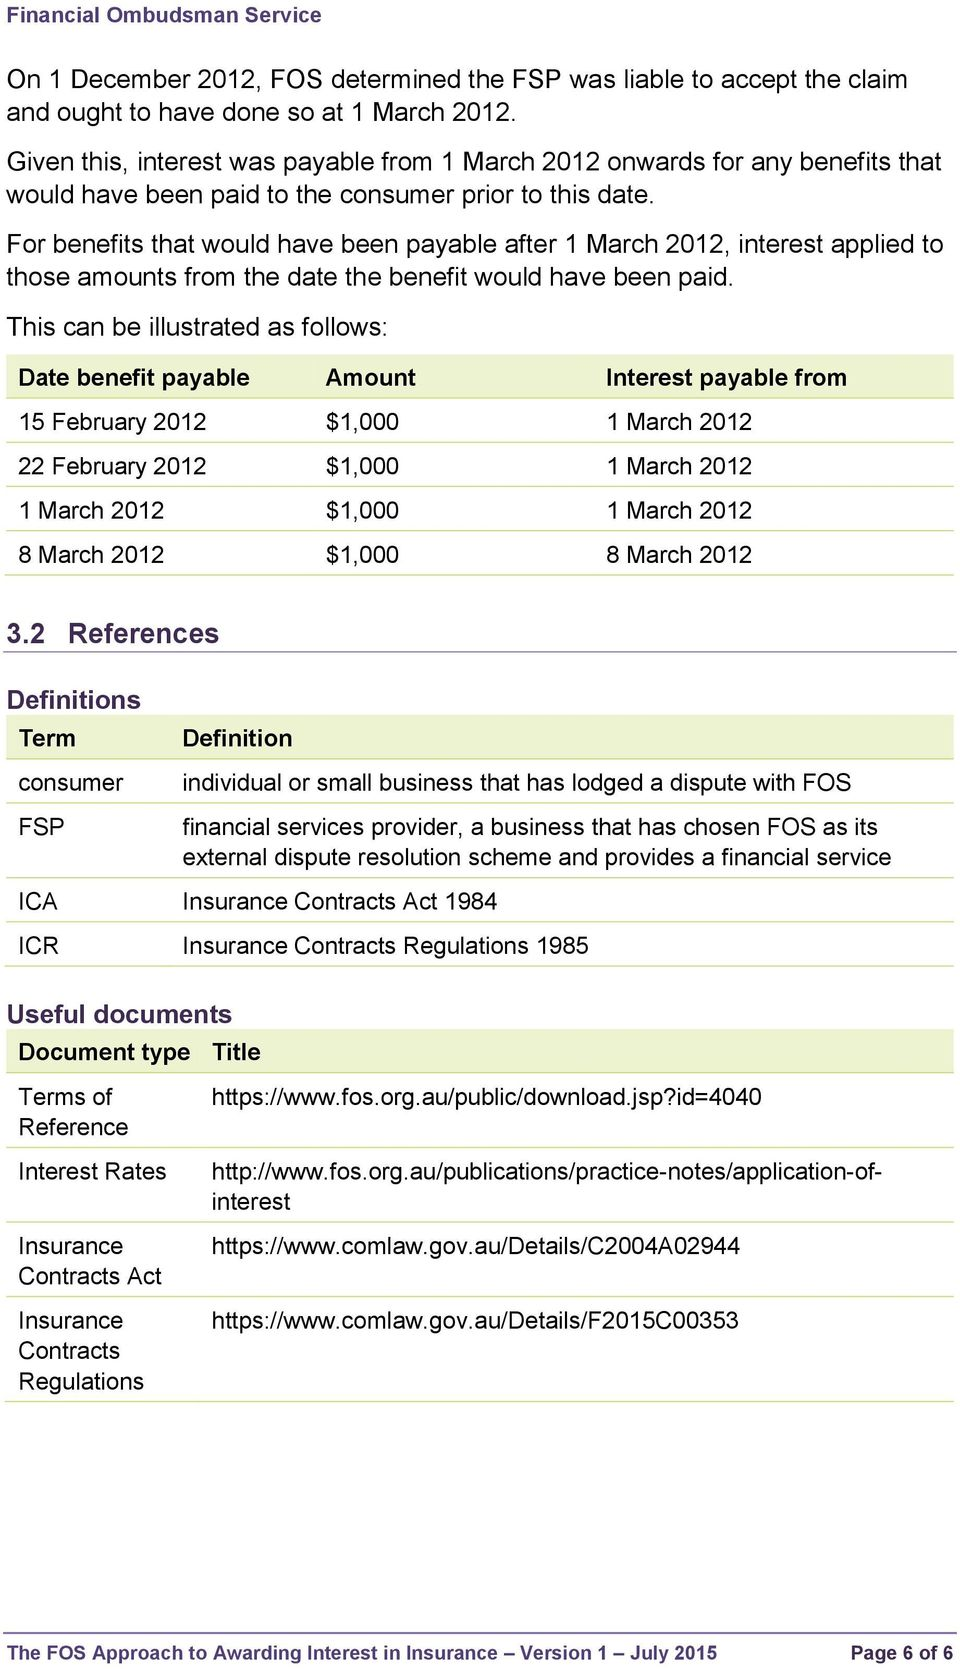 For benefits that would have been payable after 1 March 2012, interest applied to those amounts from the date the benefit would have been paid.